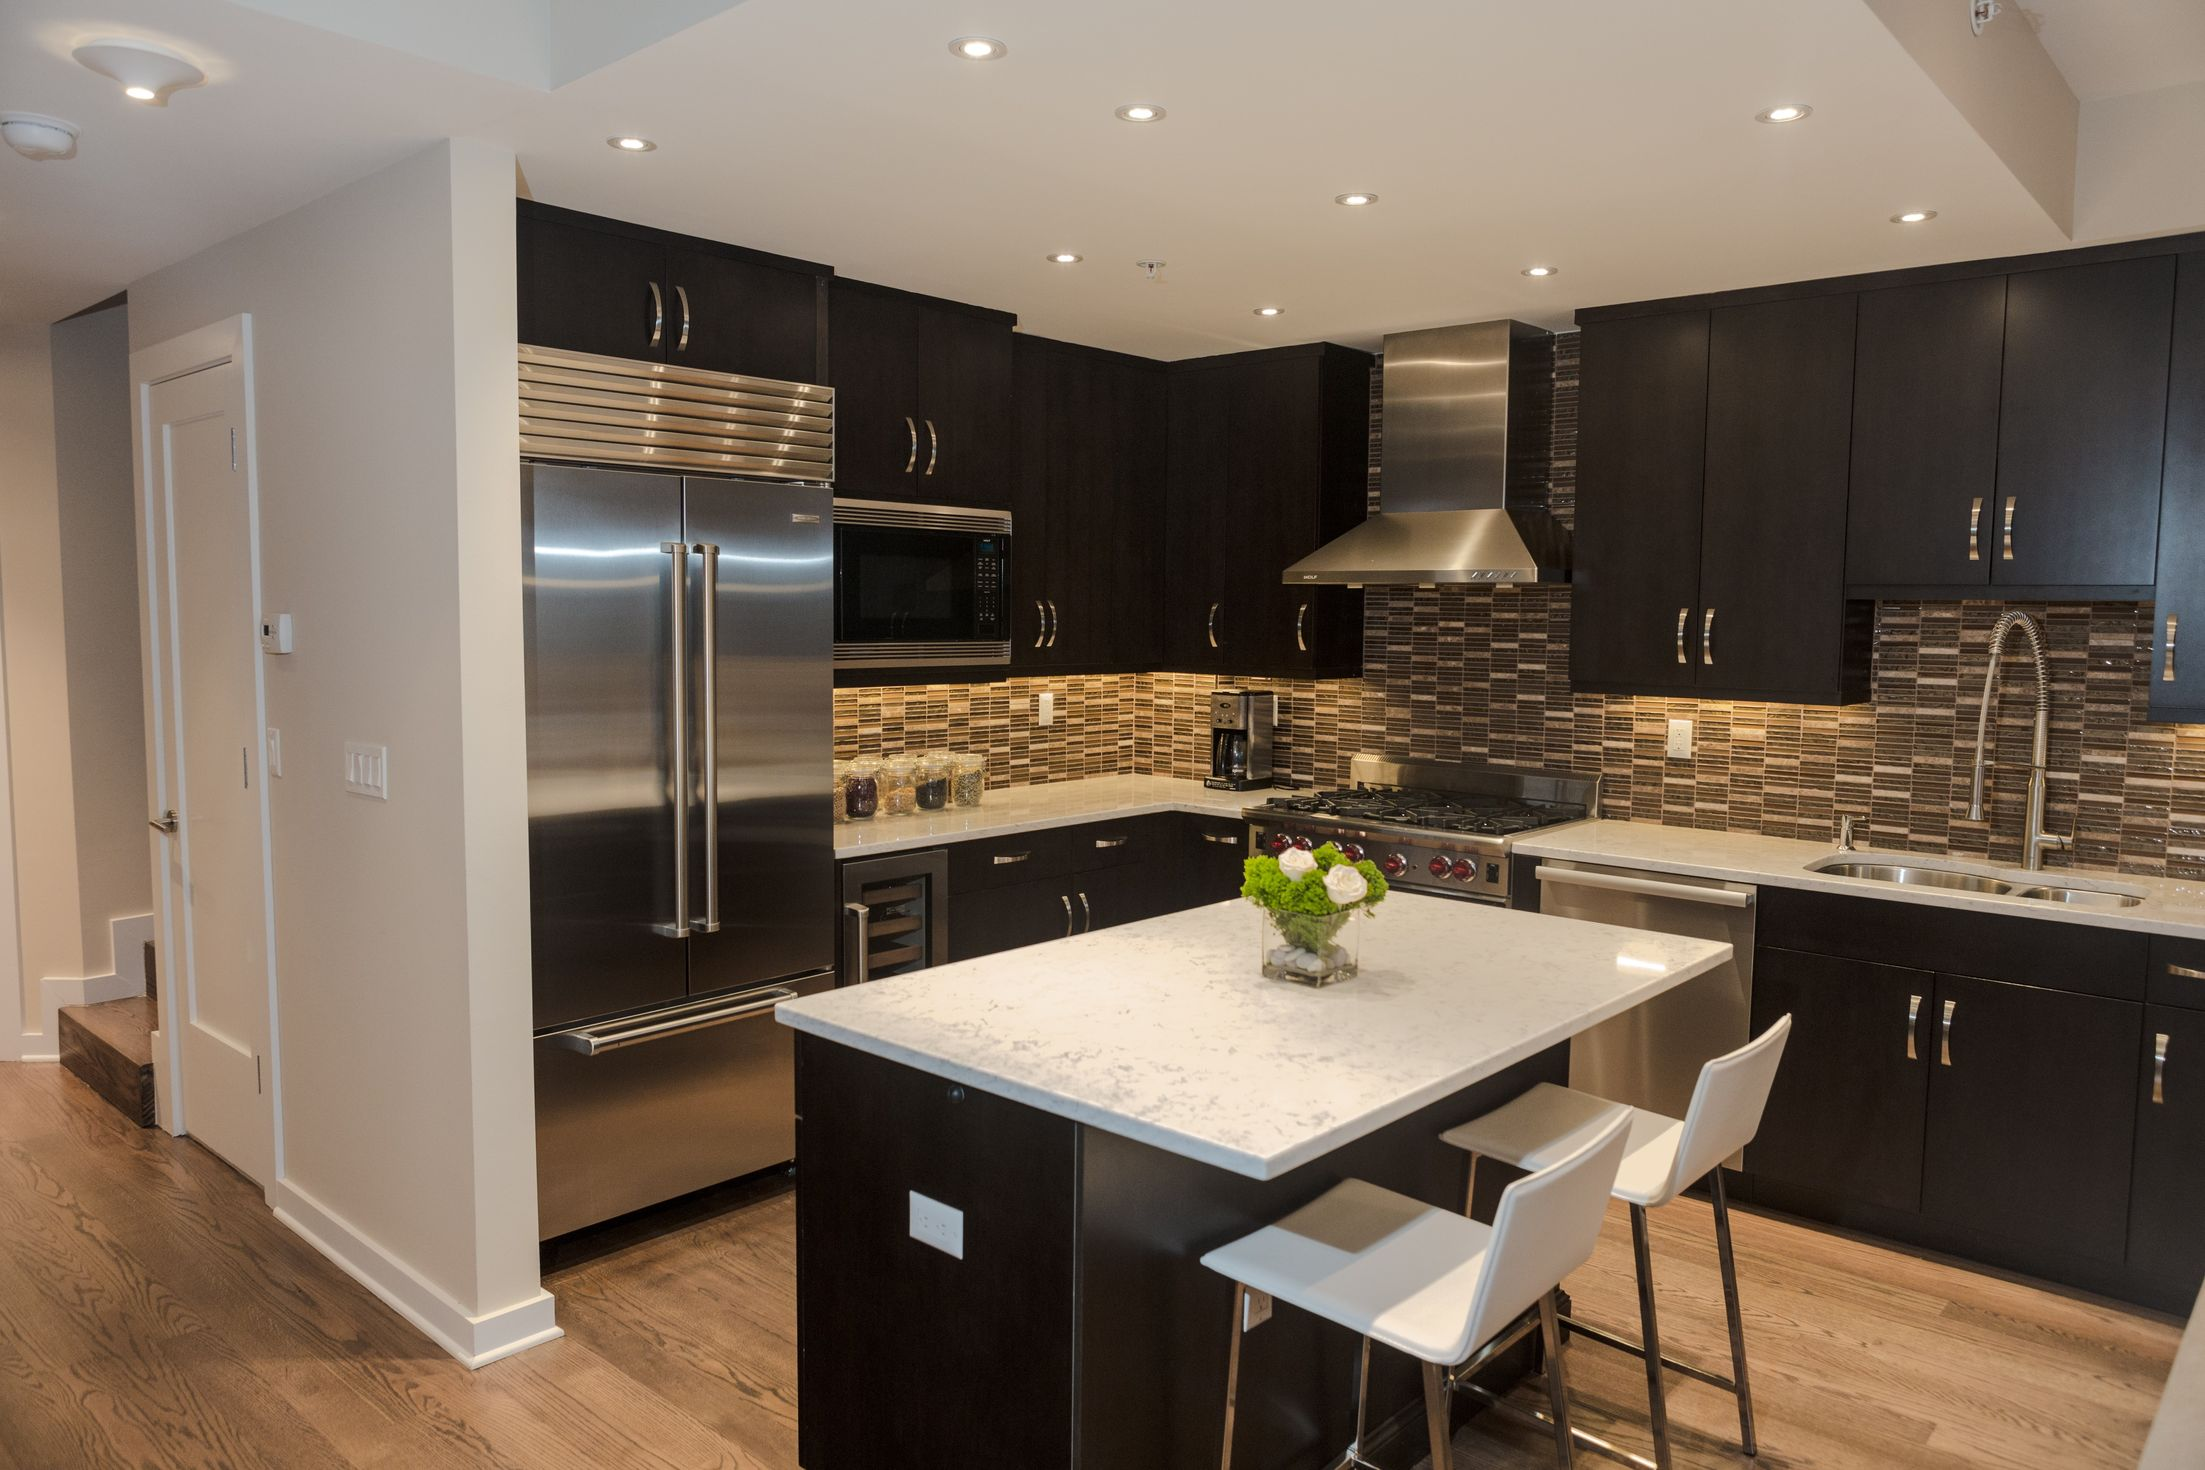 average cost for kitchen cabinets 33x19 sink 25+ latest design ideas of modular pictures ...